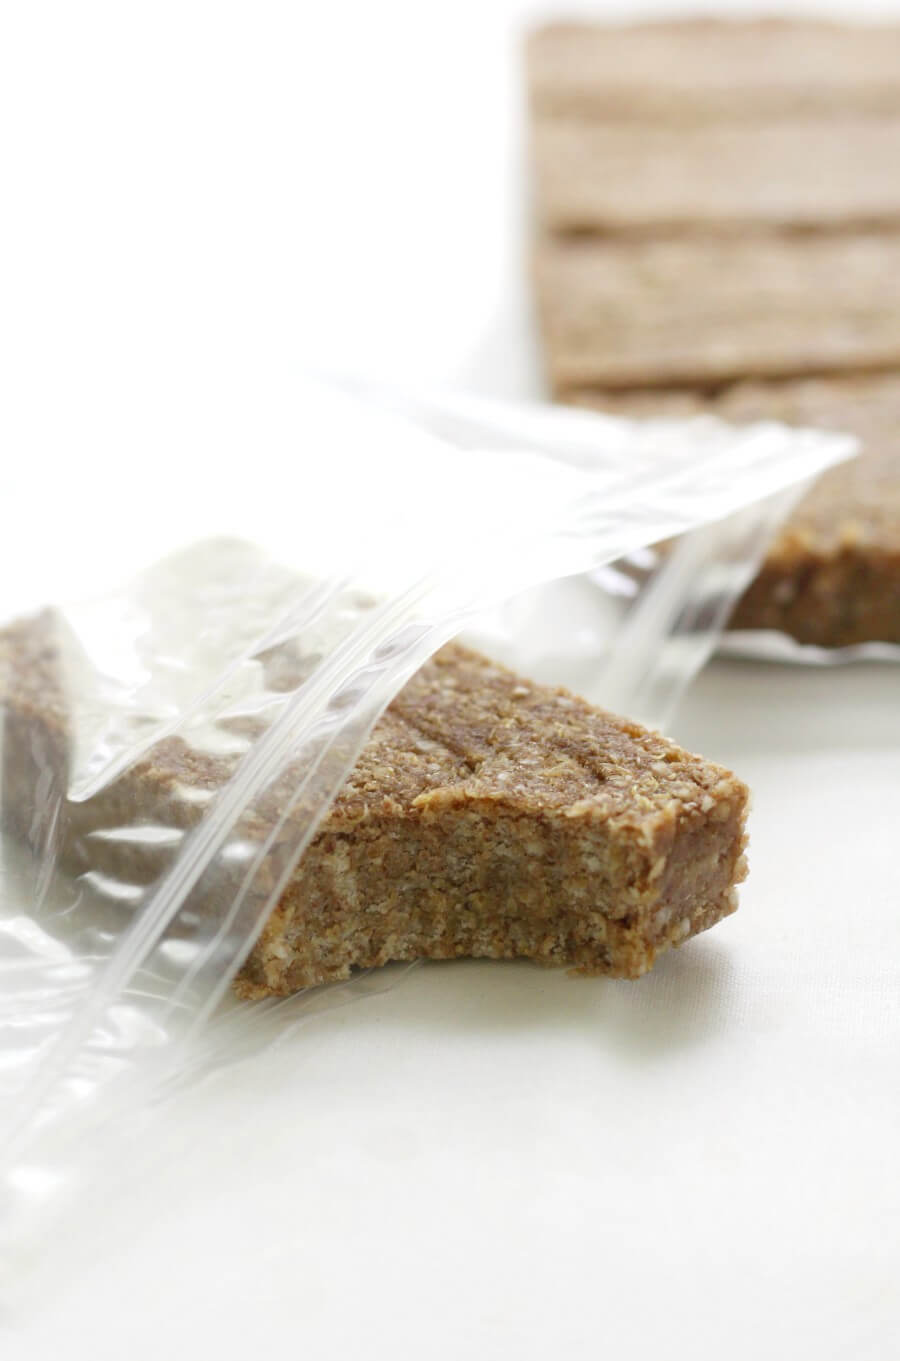 no-bake granola bar in a plastic storage bag